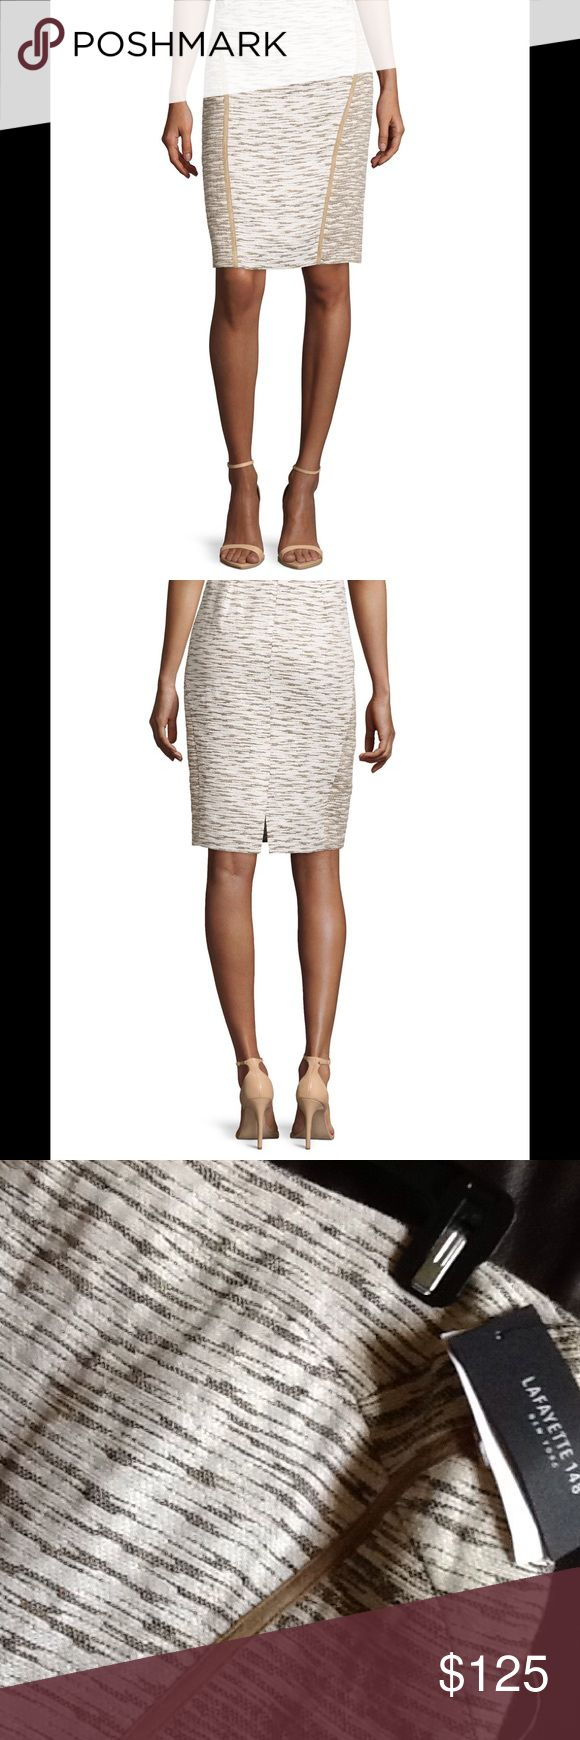 Skirt. Tweed  skirt with contrast seams. straight hem that hits below knee. Neimun Marcus Lafayette 148 New York Skirts Pencil